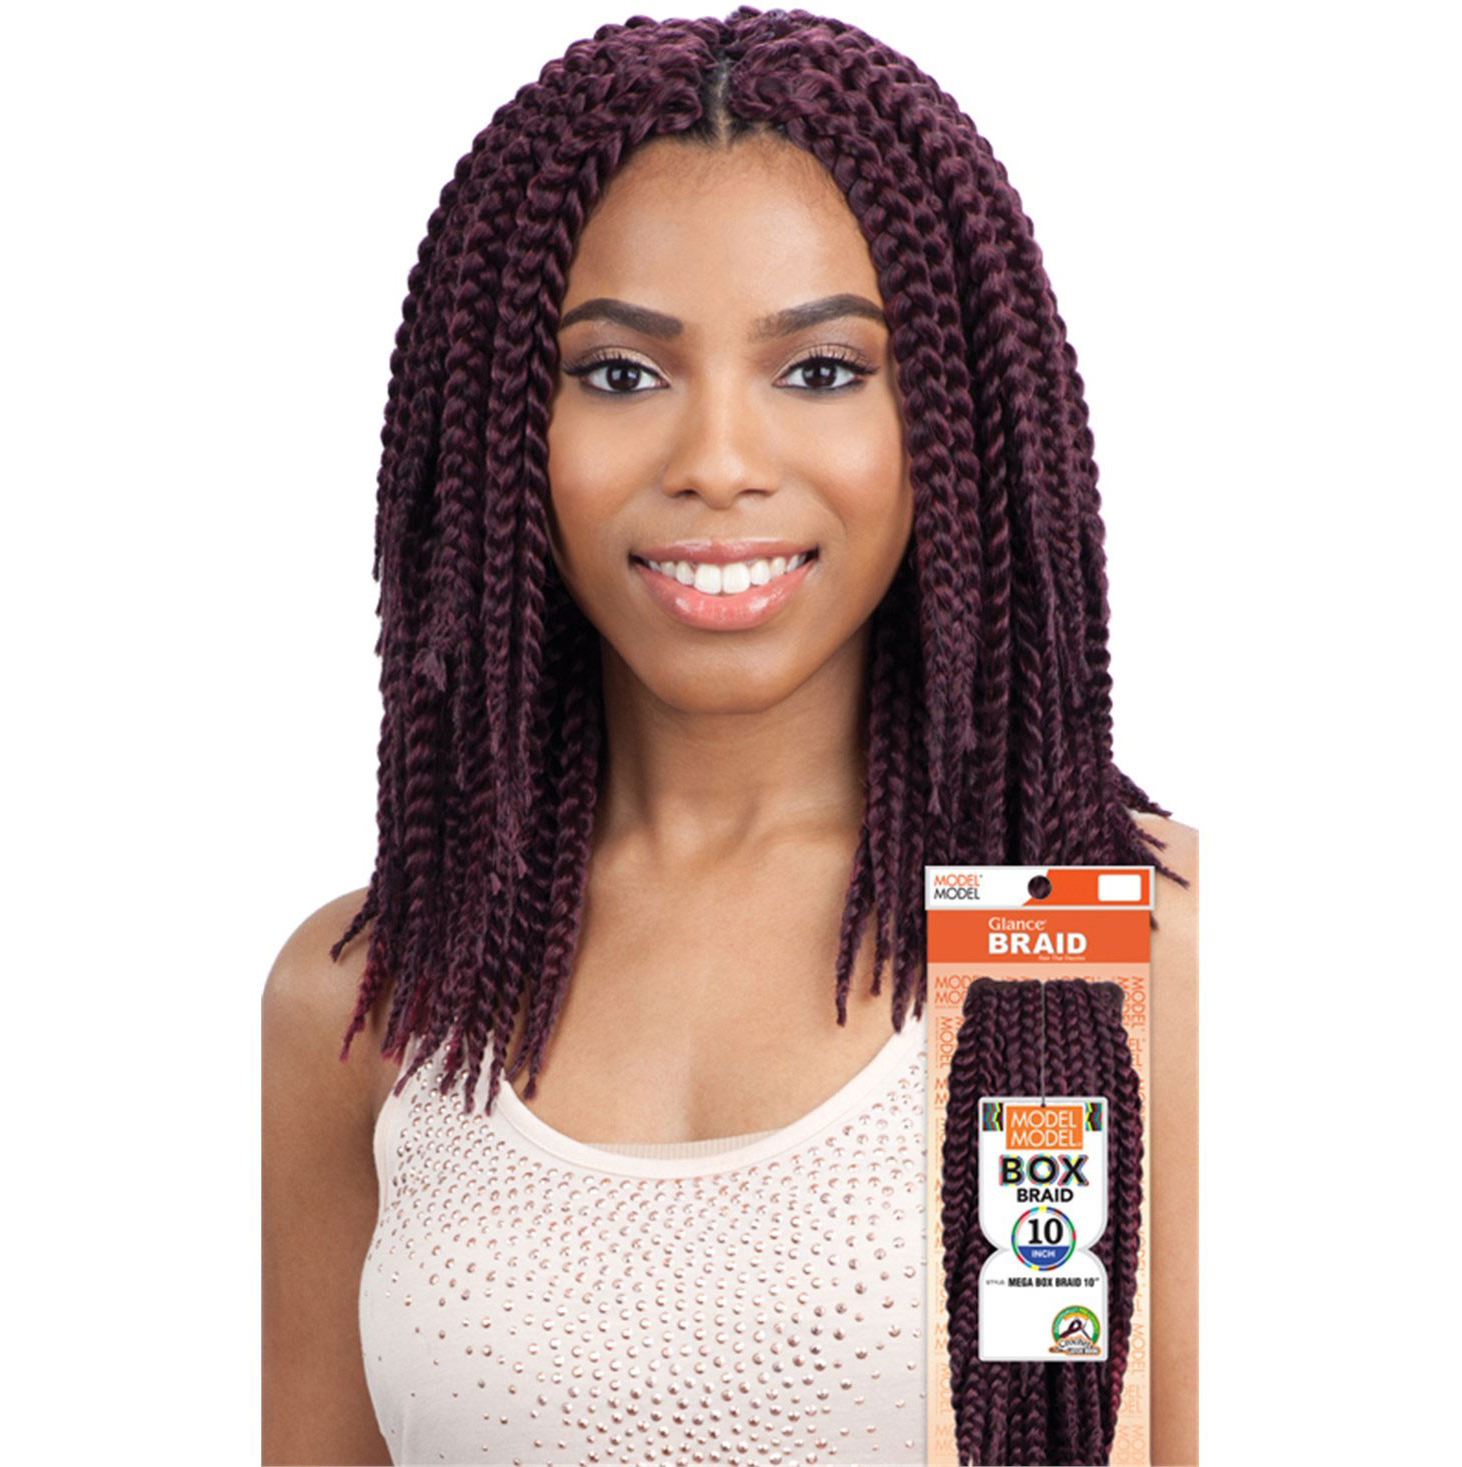 MEGA-BOX-BRAID-10-034-MODEL-MODEL-GLANCE-SYNTHETIC-CROCHET-BRAIDING ...